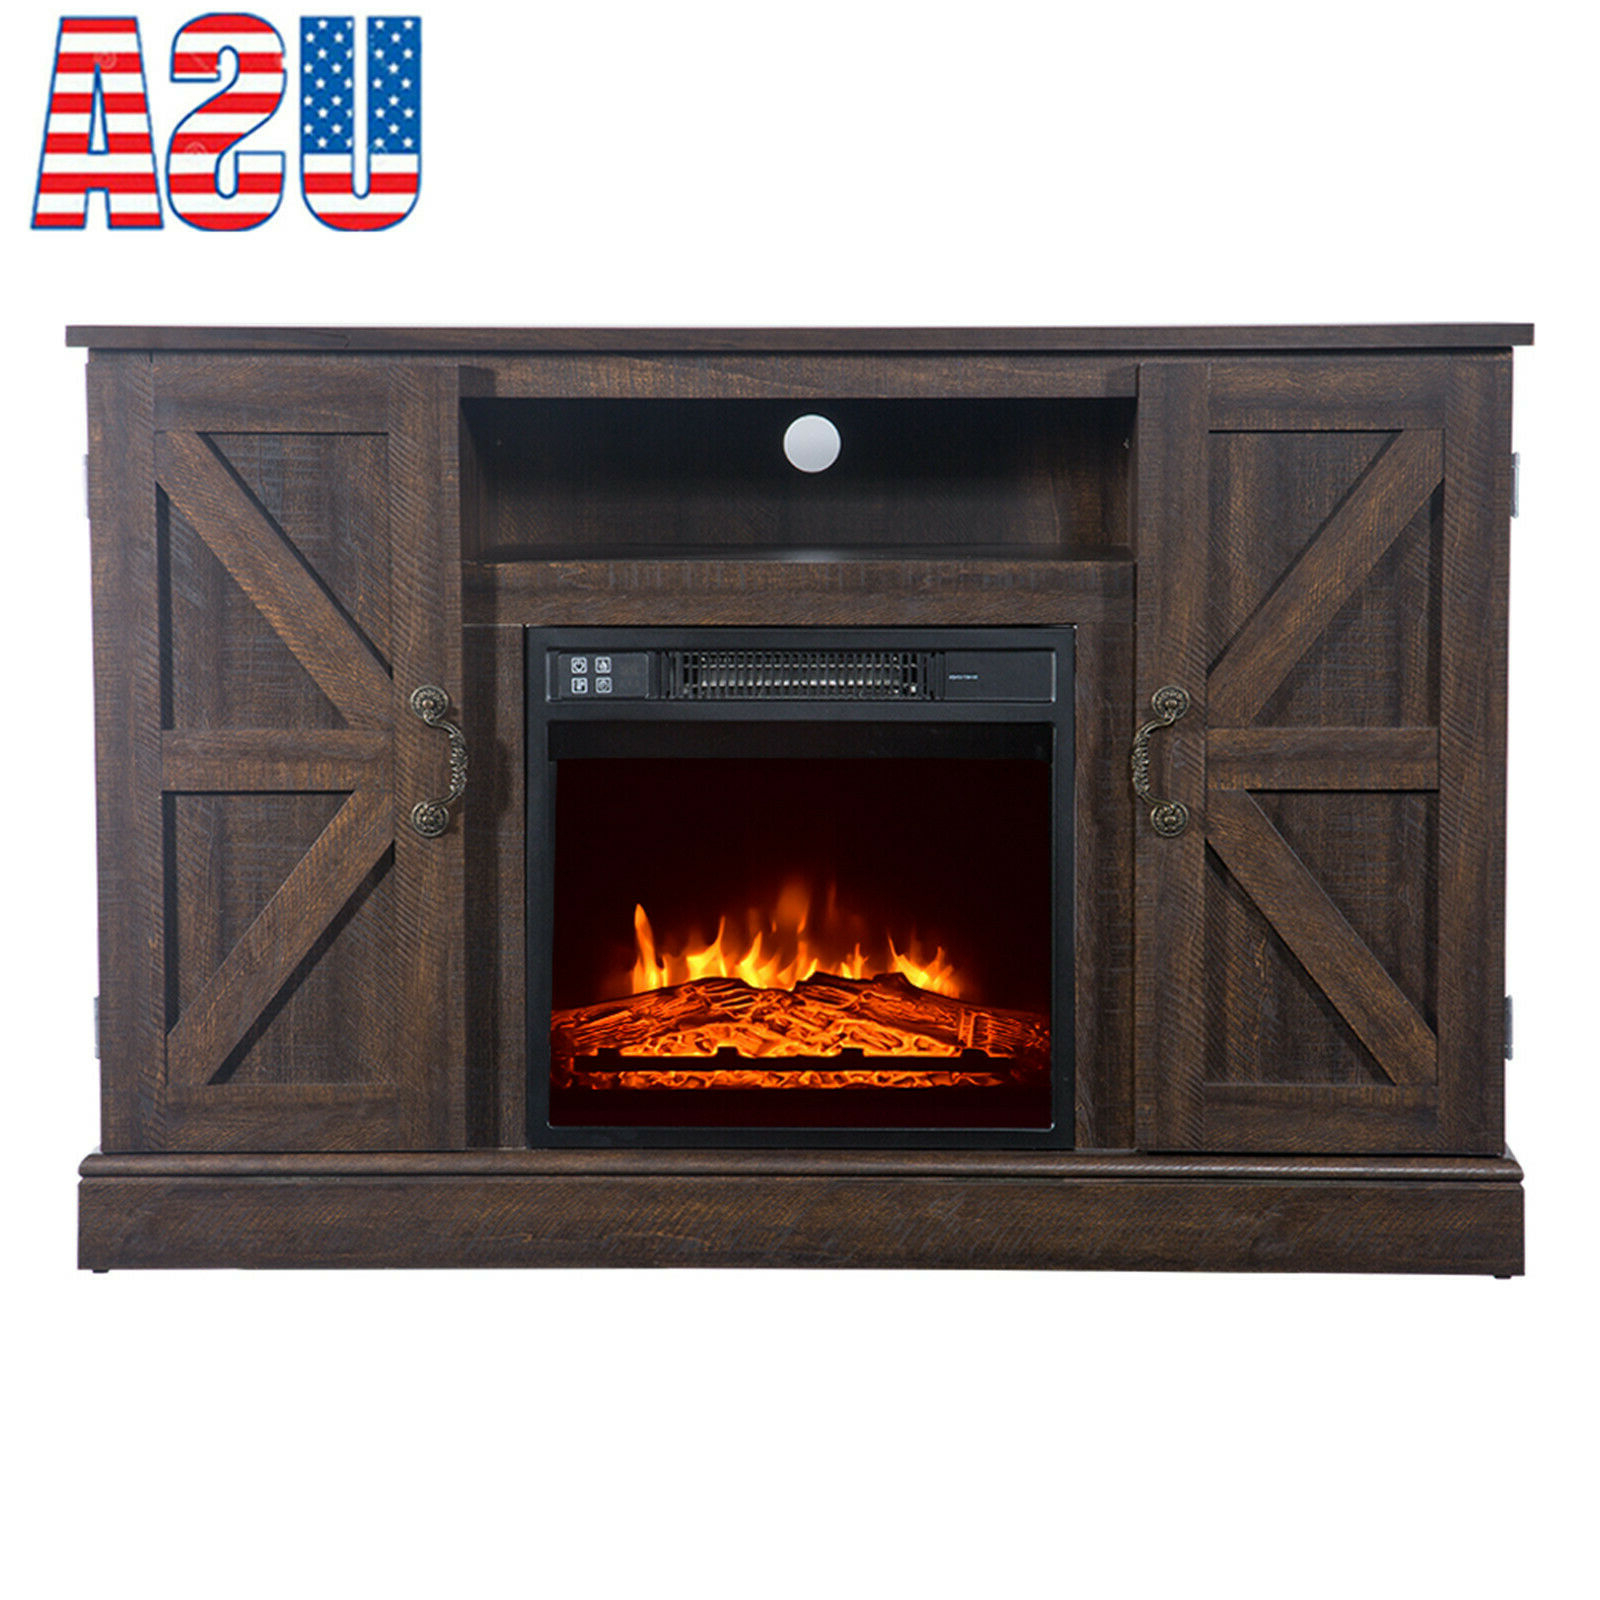 New Arrival Rustic Wood Fireplace Tv Stand For 50 With Rustic Grey Tv Stand Media Console Stands For Living Room Bedroom (View 15 of 20)